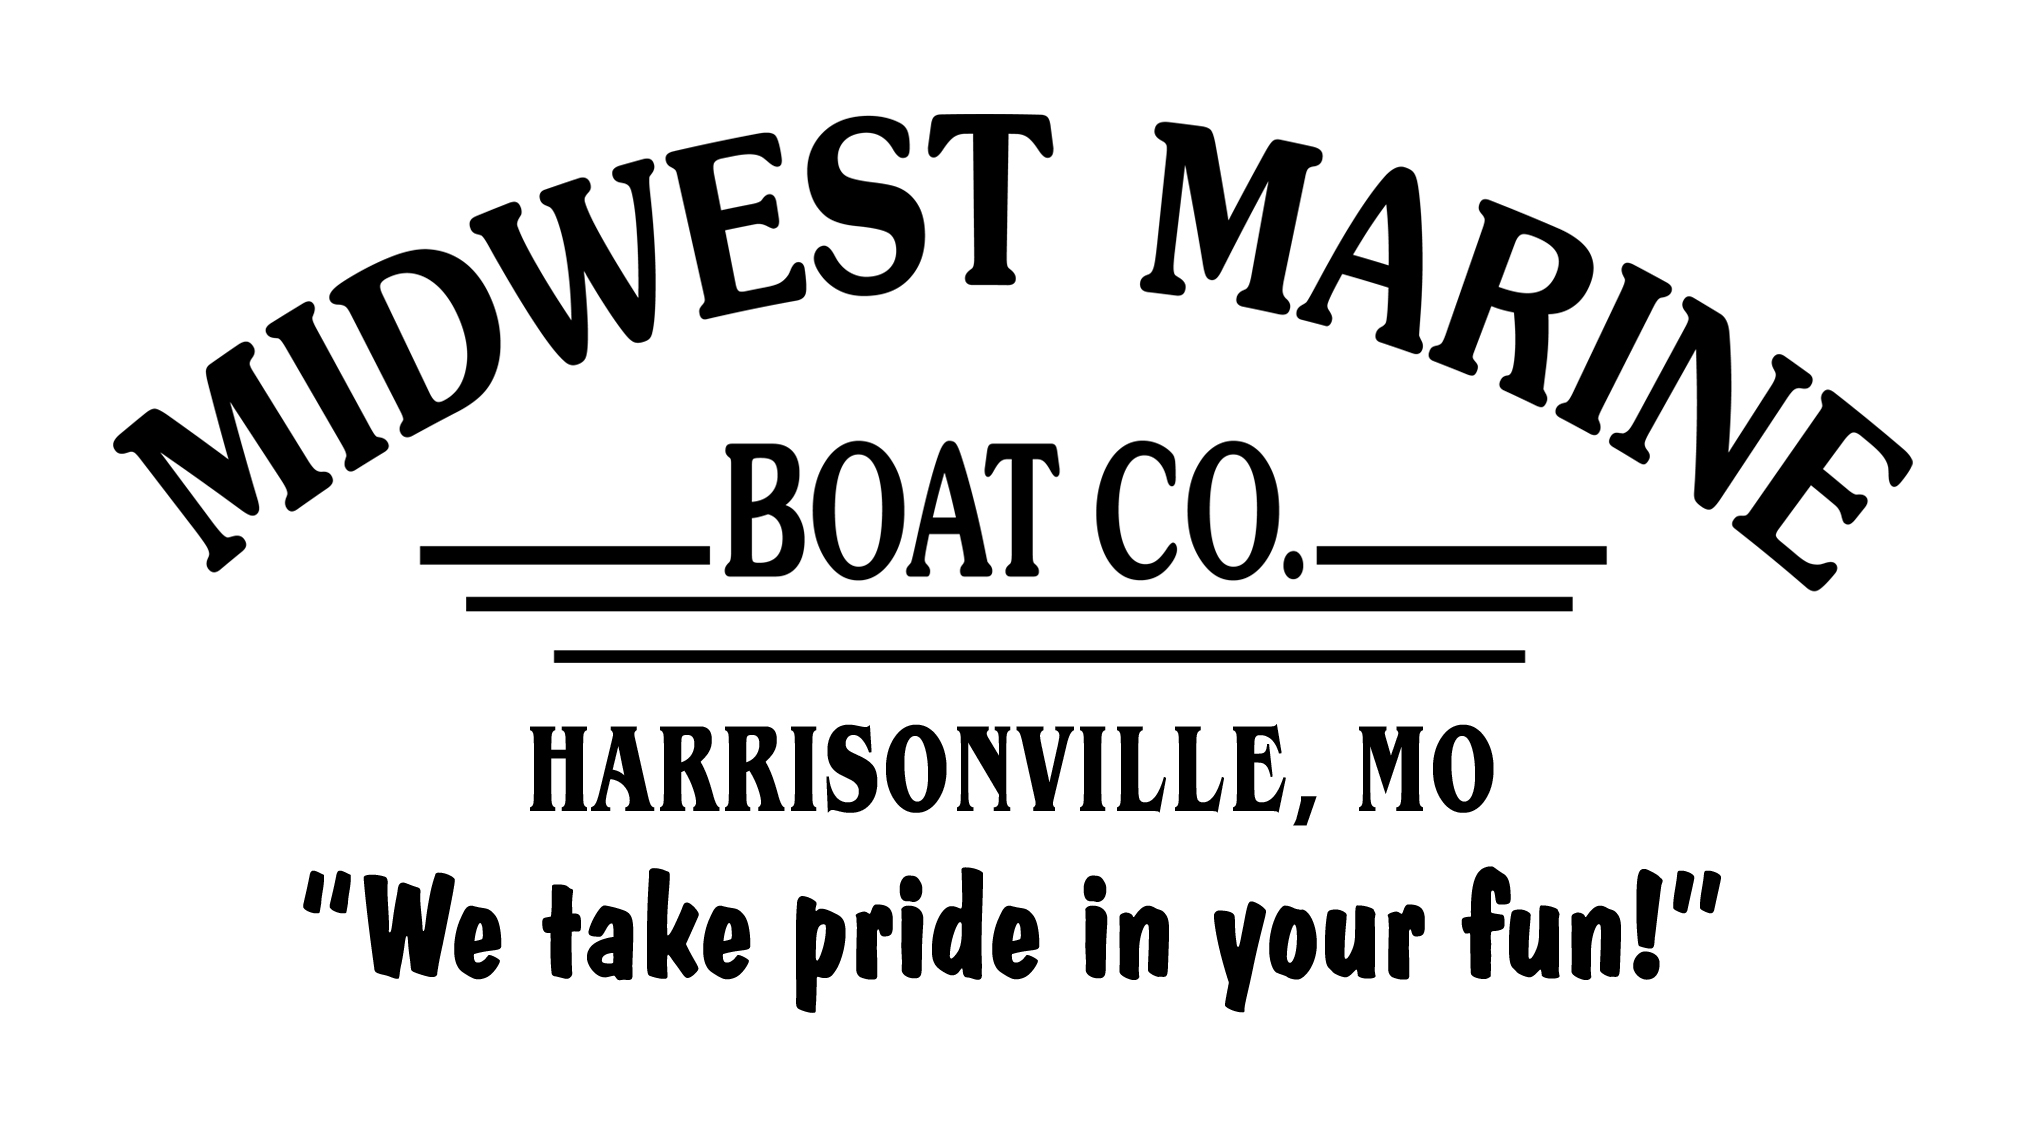 Midwest Marine Boats 21500 E 275th St, Harrisonville, MO